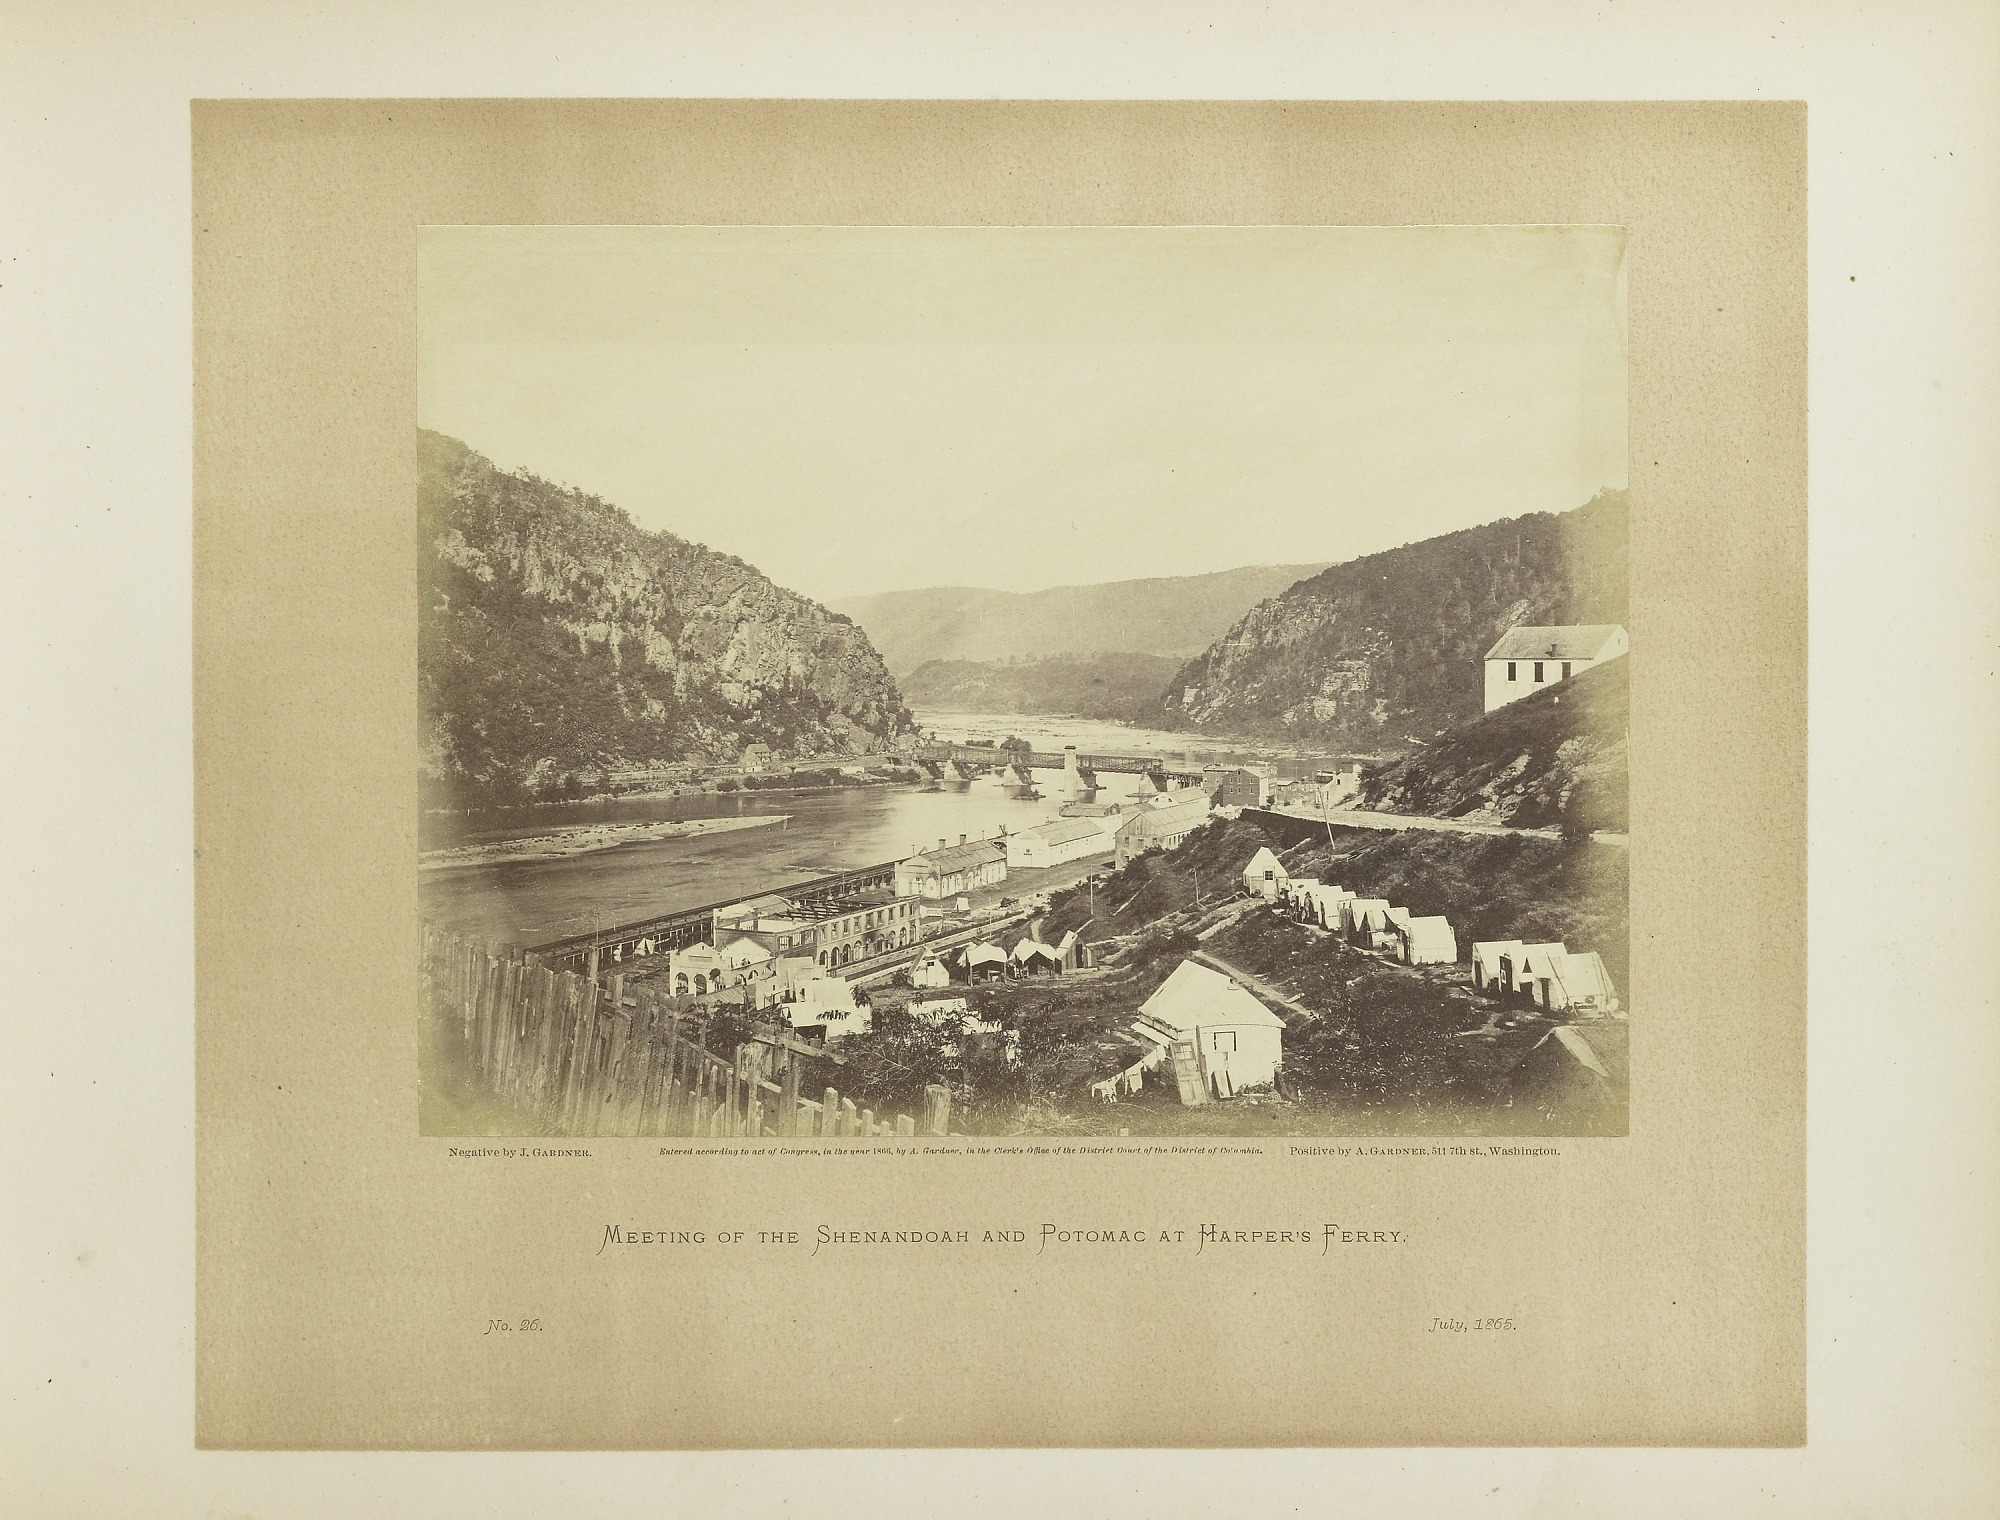 Meeting of the Shenandoah and Potomac, at Harper's Ferry